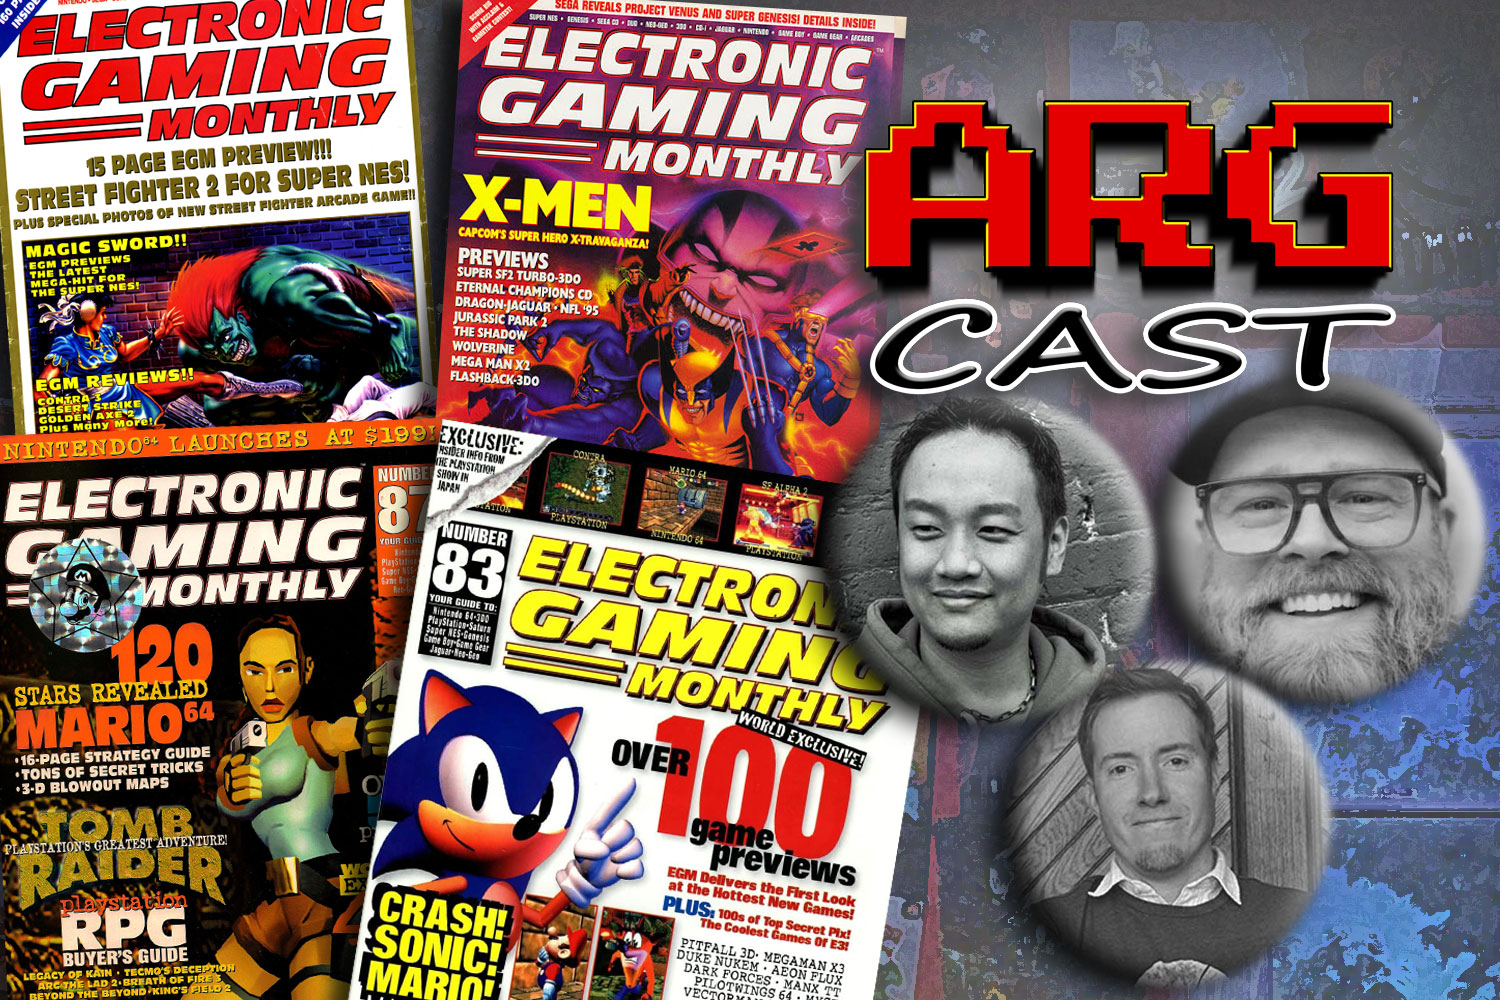 ARGcast #210: Electronic Gaming Monthly w/ Shoe, Shawnimal, & Crispin